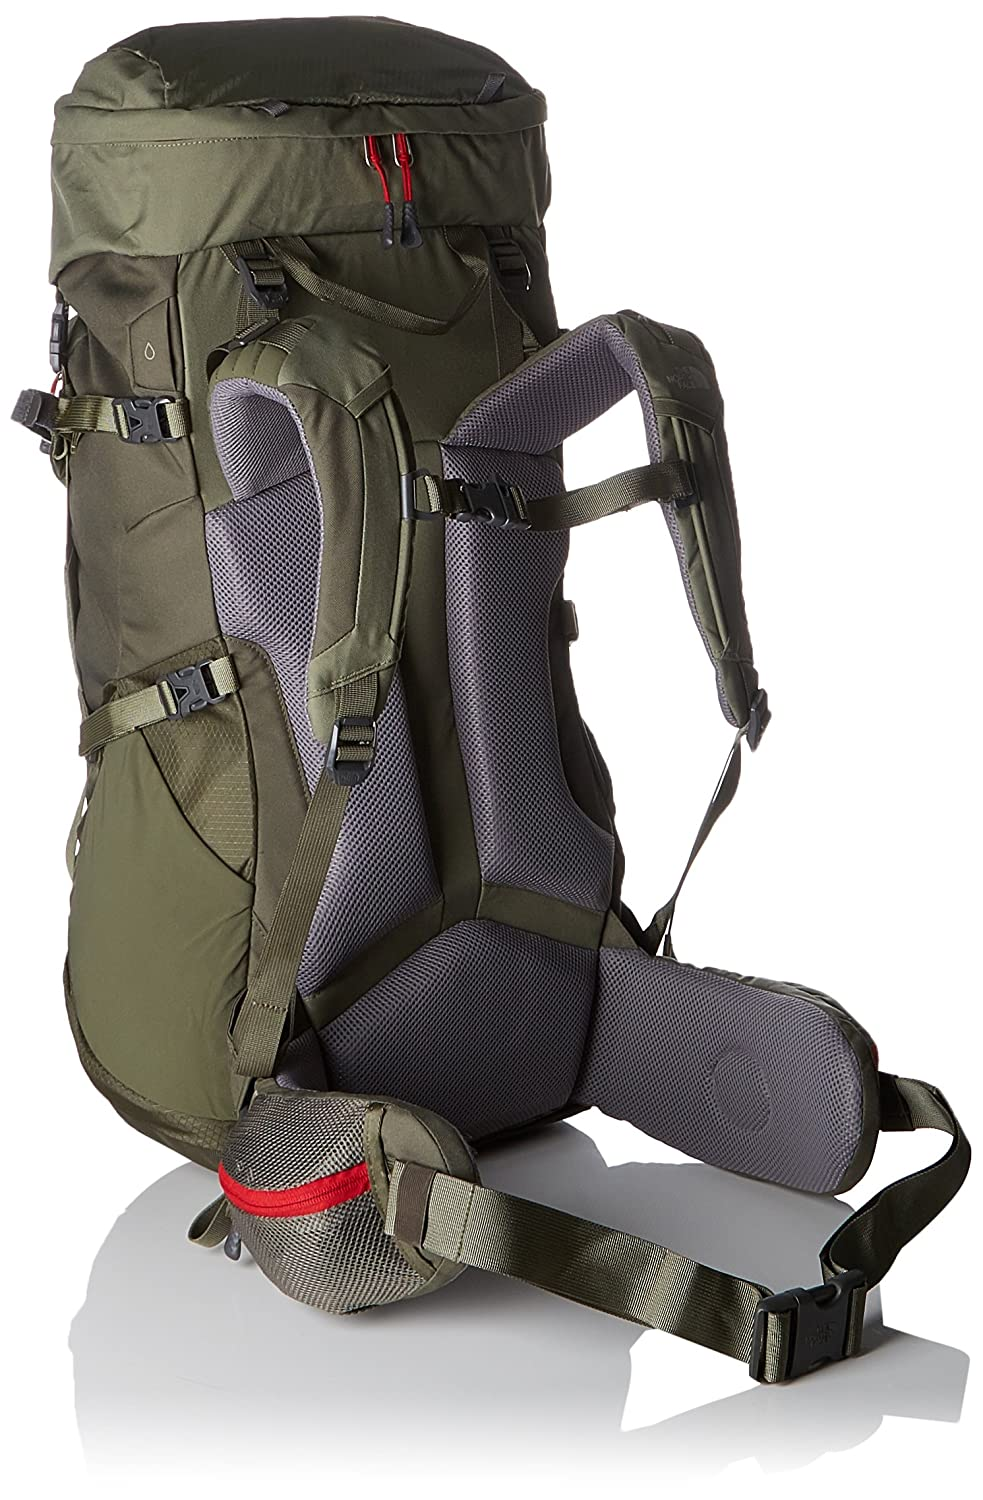 833b5964c3195 The North Face Terra Unisex Outdoor Backpack